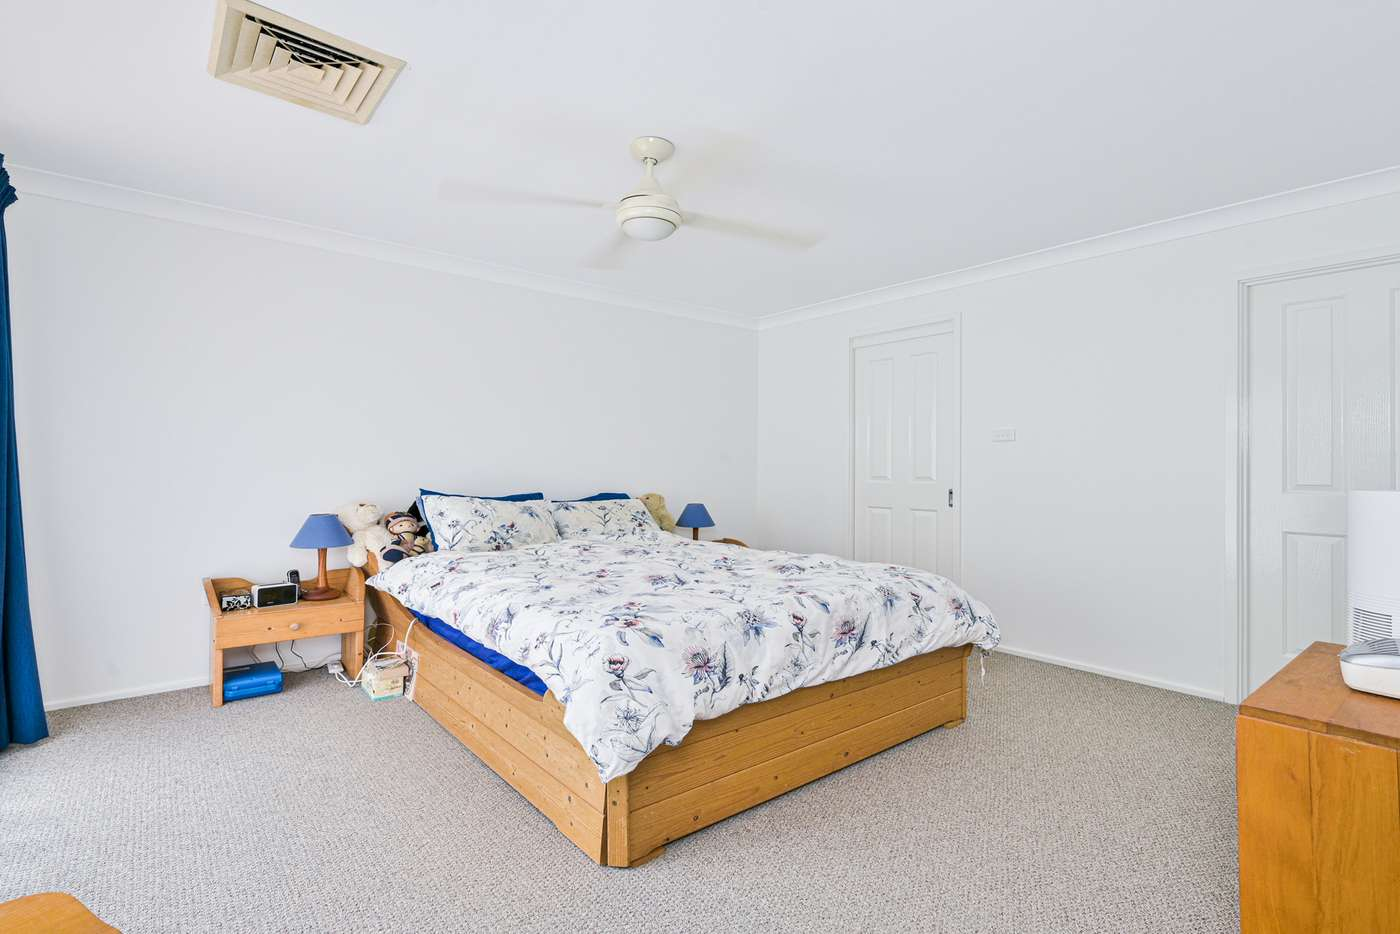 Sixth view of Homely house listing, 6 Huen Place, Tahmoor NSW 2573